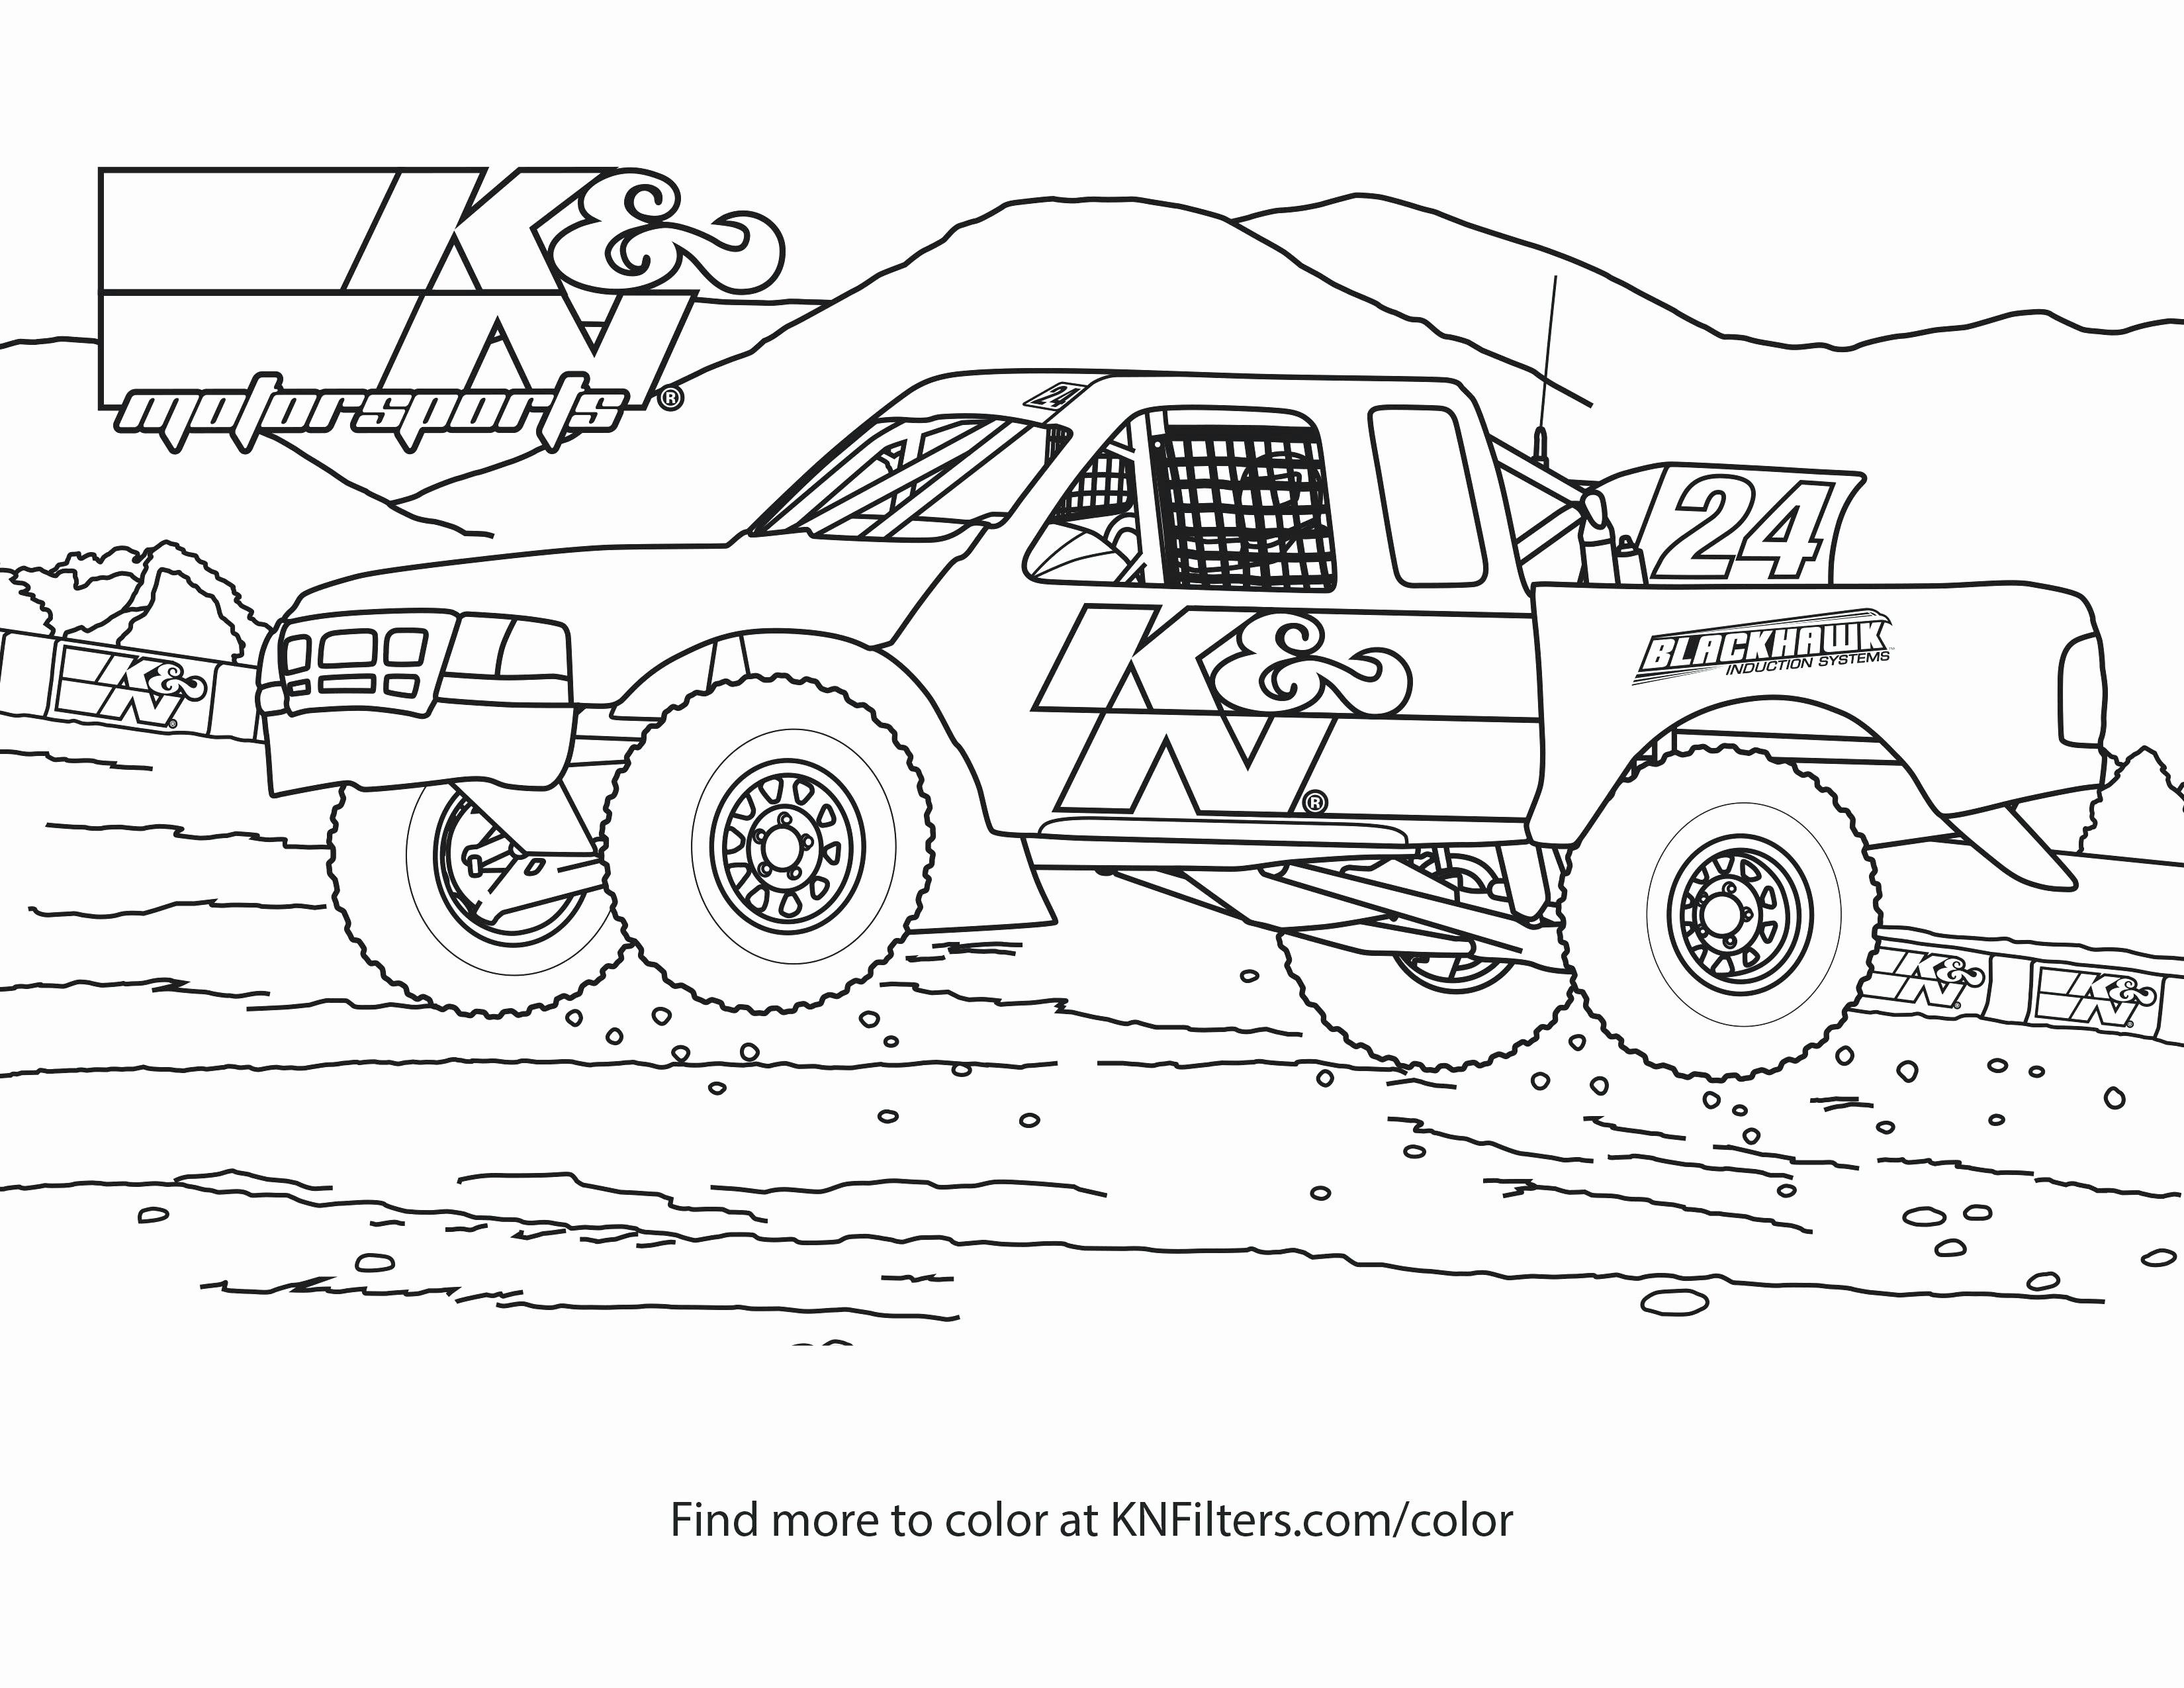 Garbage Truck Coloring Sheet Best Of Better Trucks Colouring Pages Exclusive Digger Truck Coloring Pages Monster Truck Coloring Pages Fire Truck Coloring Pages